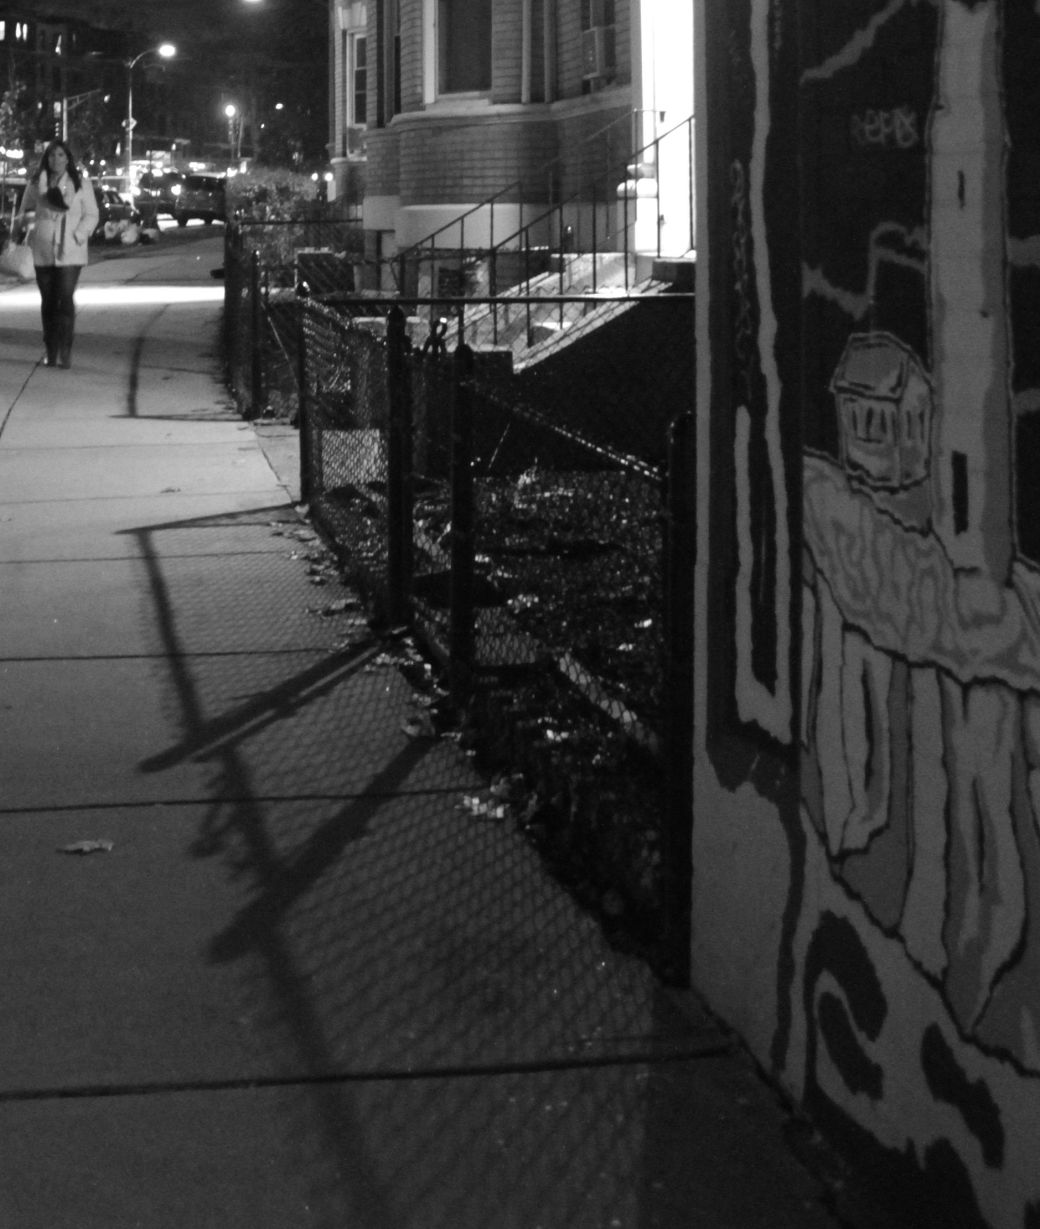 boston allston commonwealth avenue nighttime fence shadows